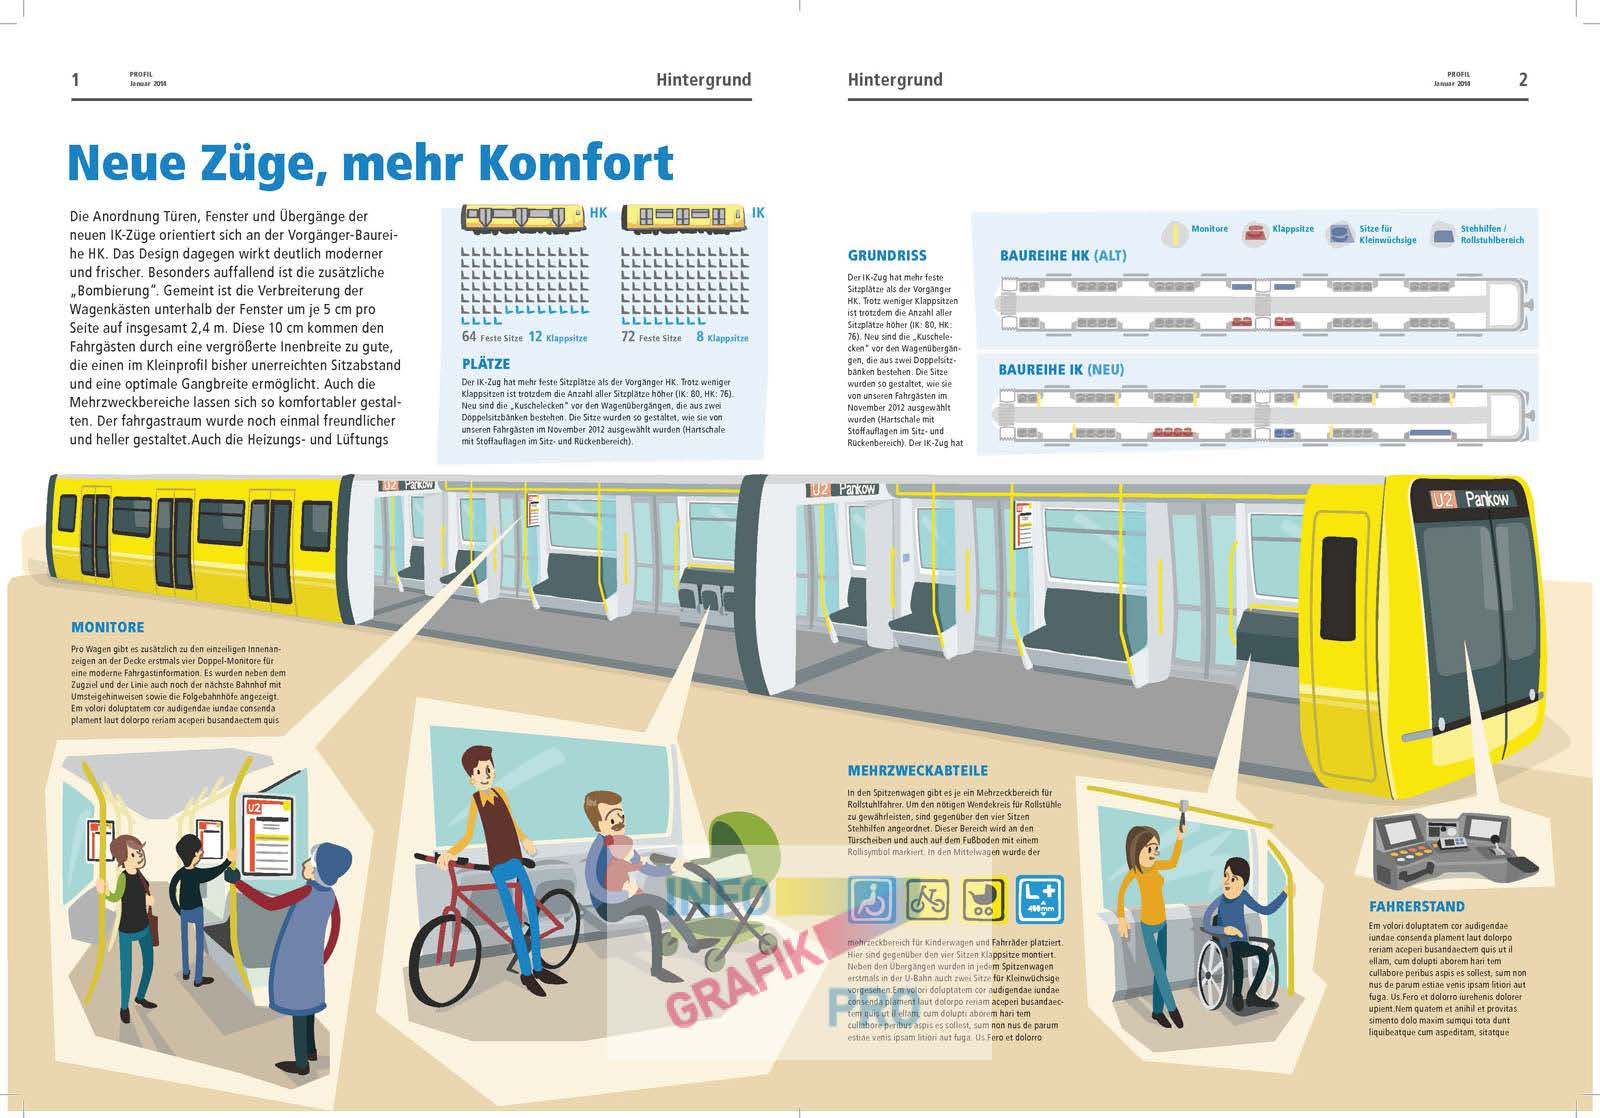 illustrative Infographic Berlin U-Bahn